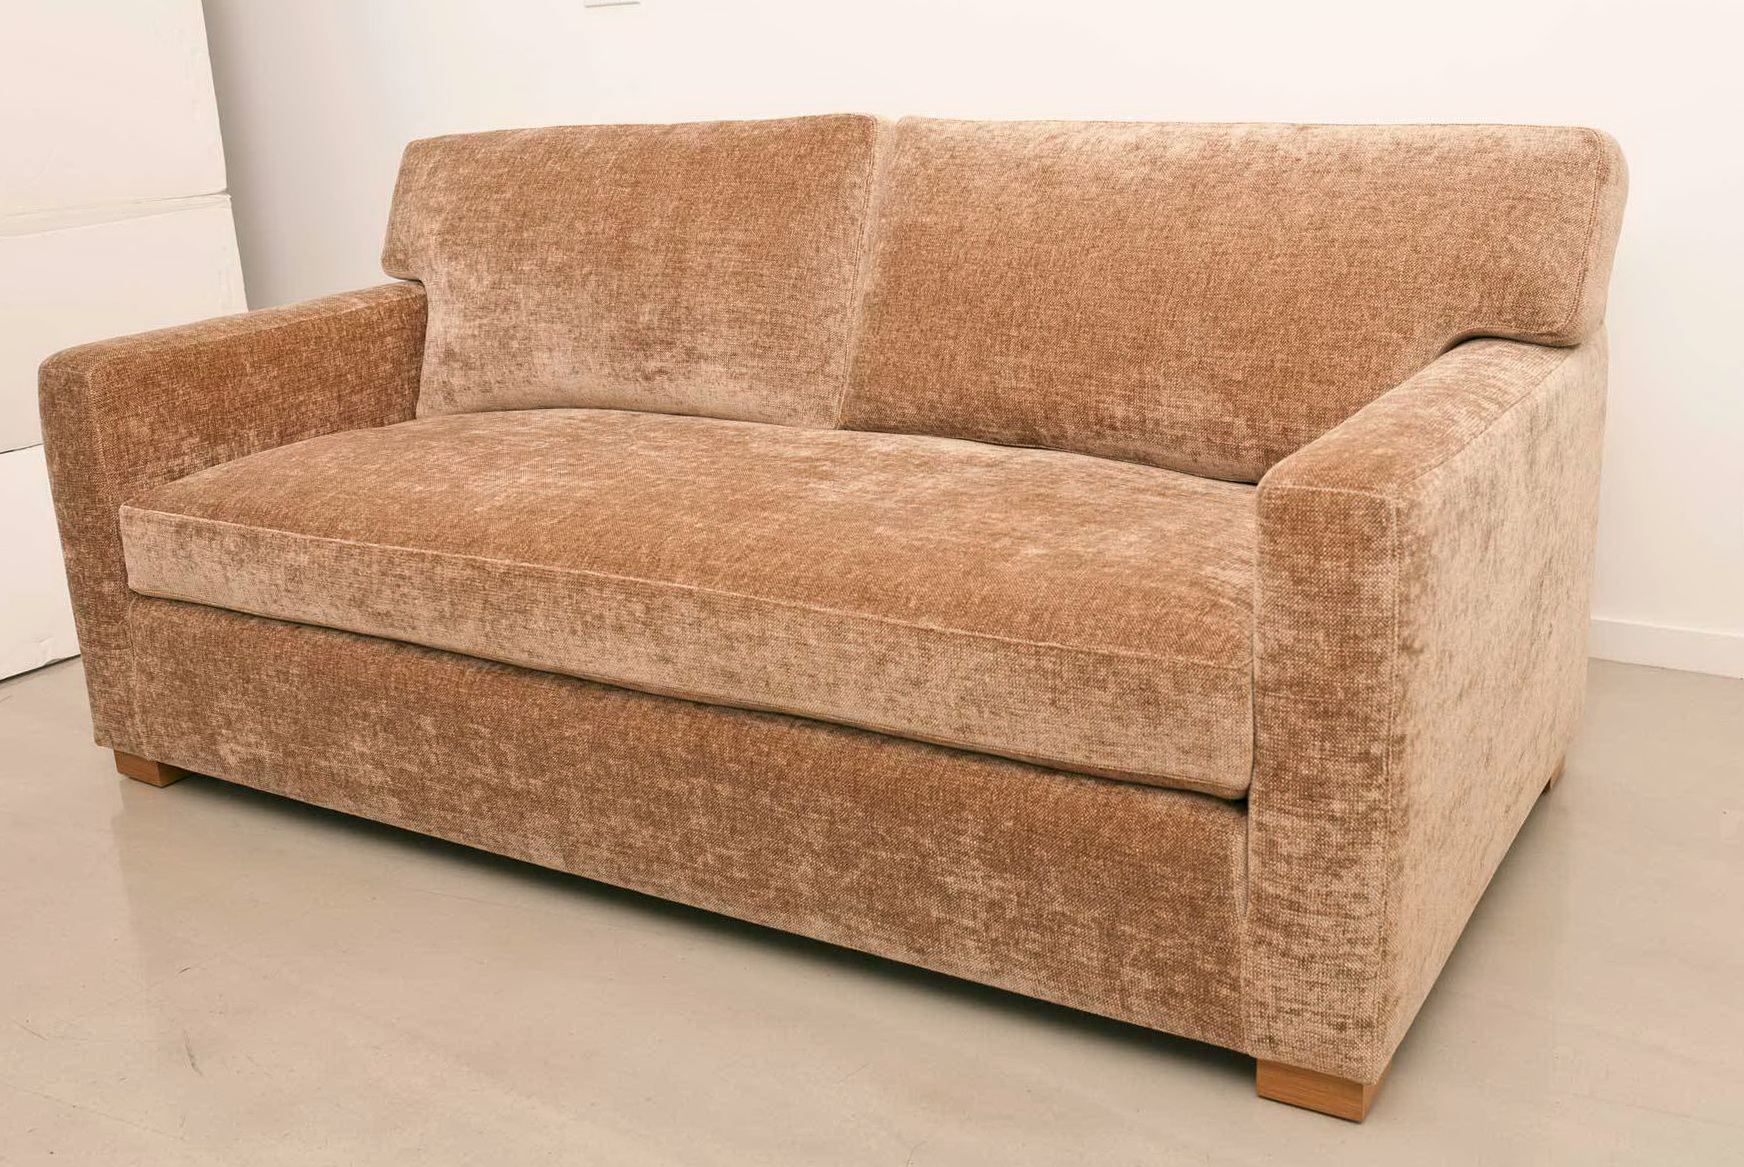 Replacement Sofa Cushions Los Angeles